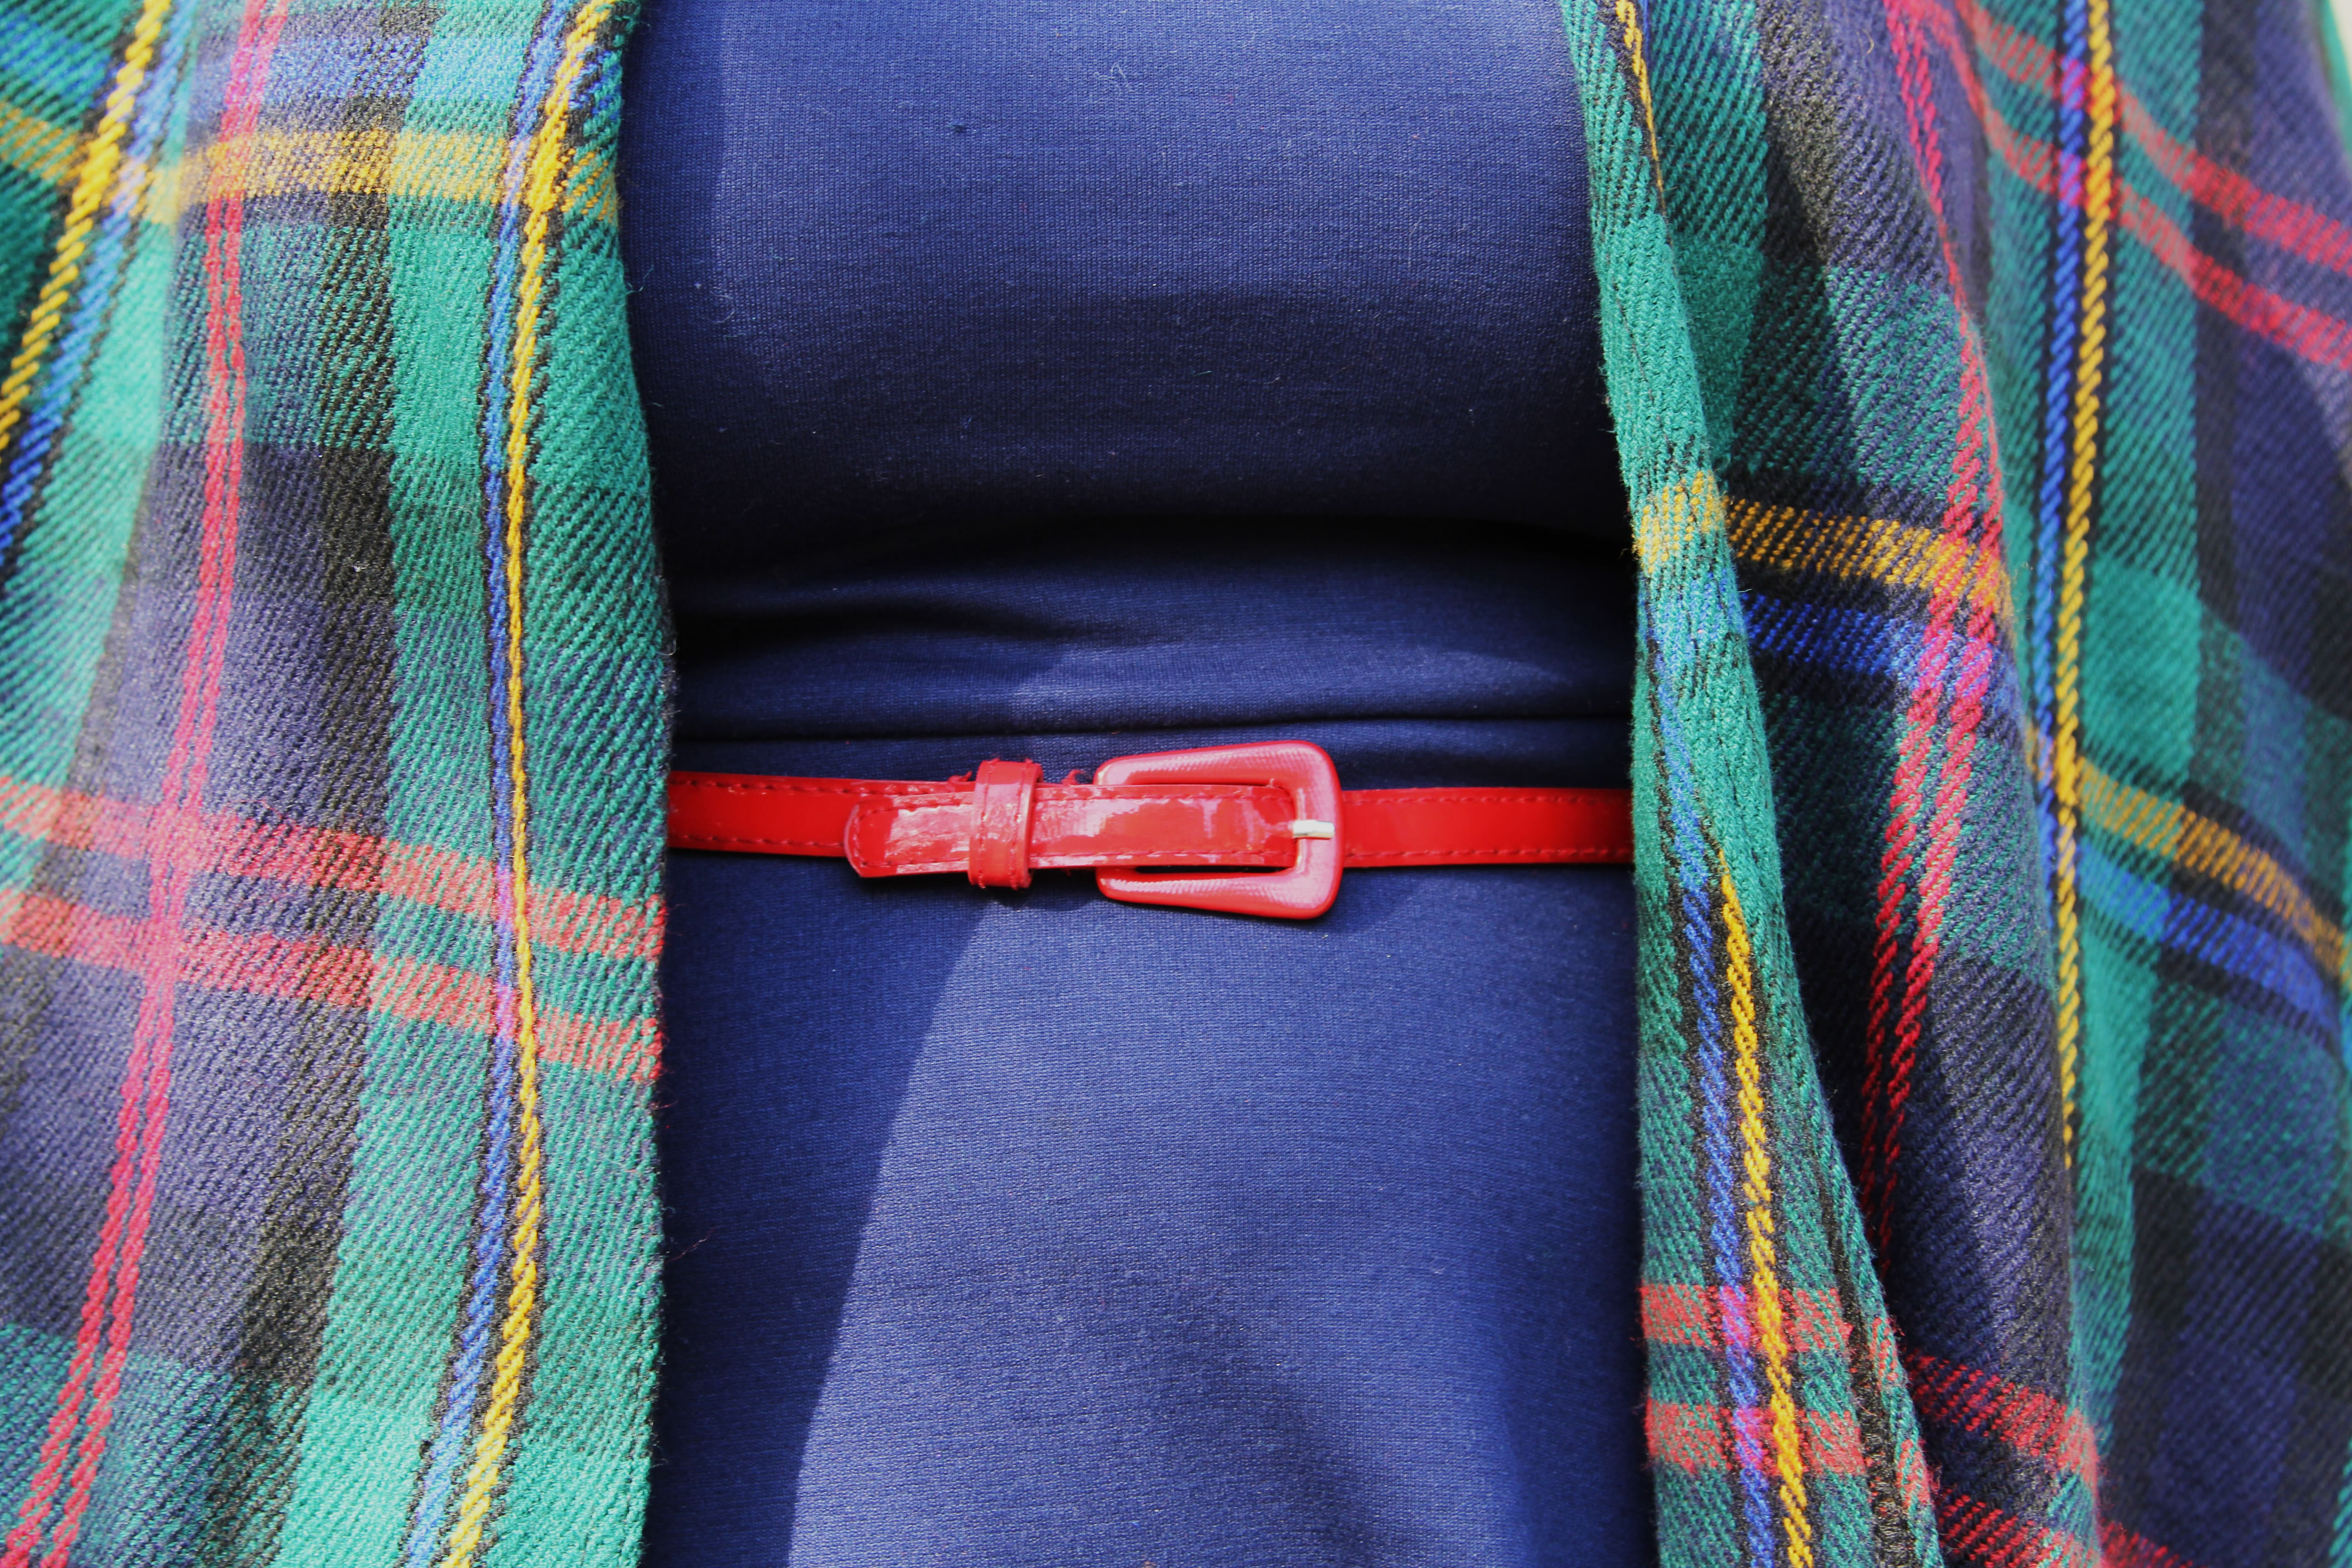 Close up of a fat woman's midsection. The blue dress, red belt, and part of the plaid cape are visible.